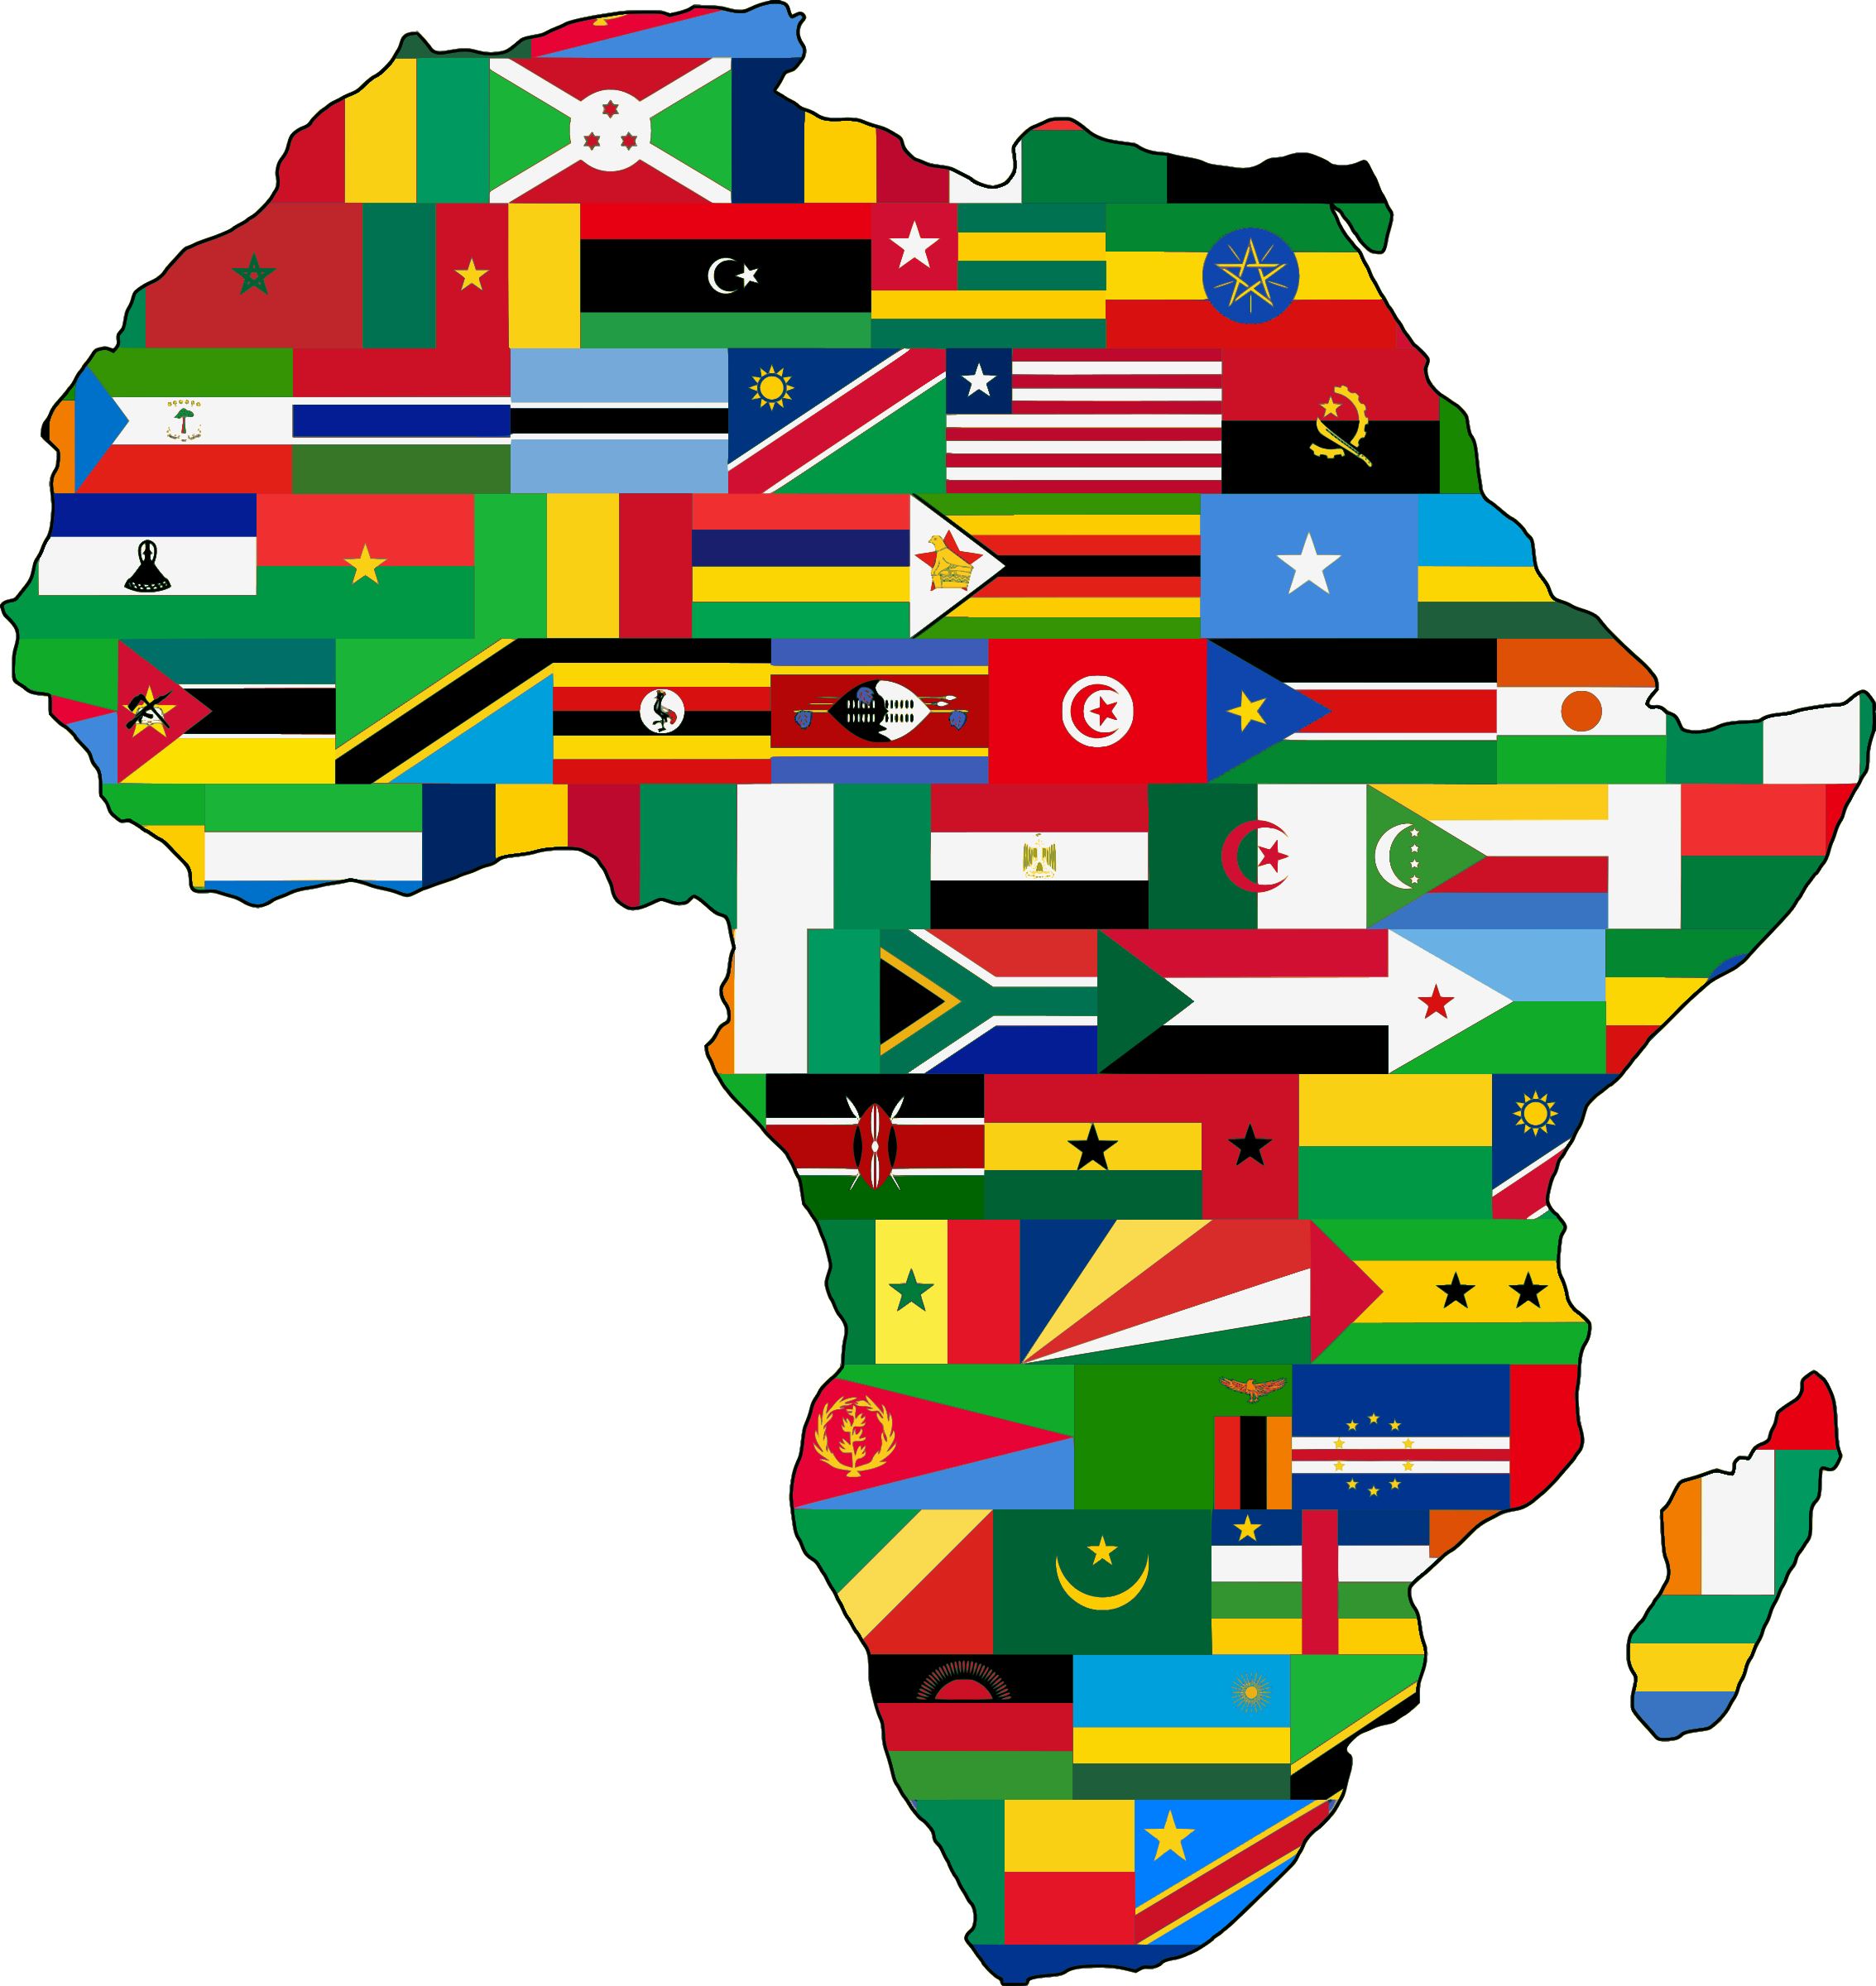 Africa clipart. Flags big image png